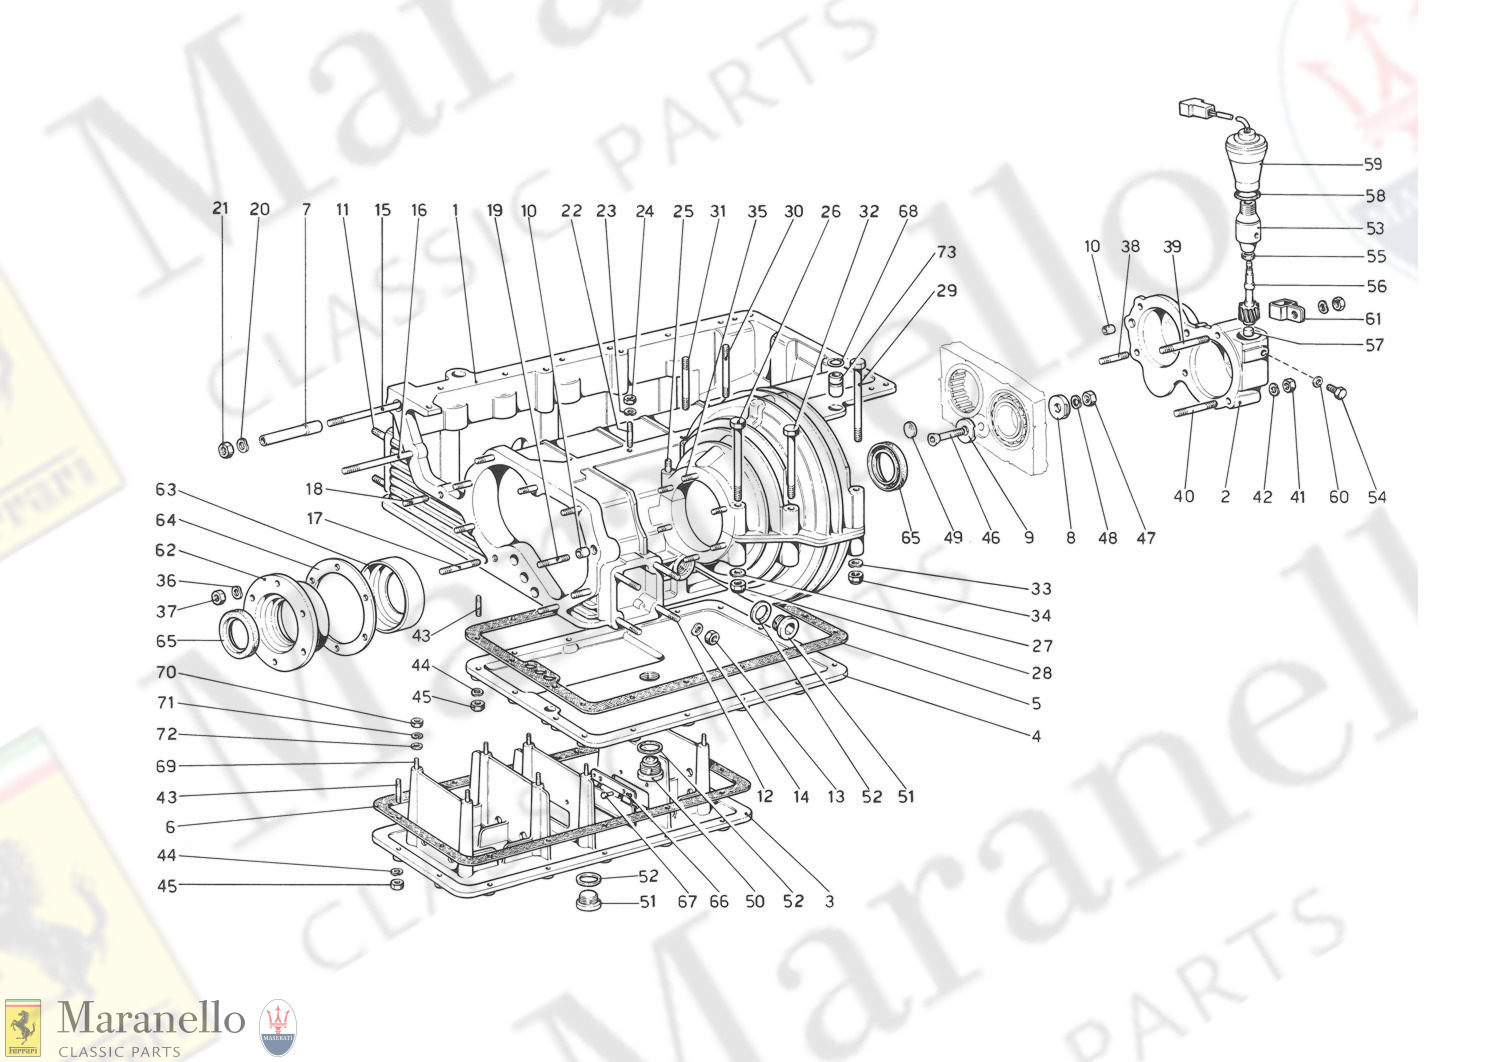 021 - Gearbox - Differential Housing And Oil Sump